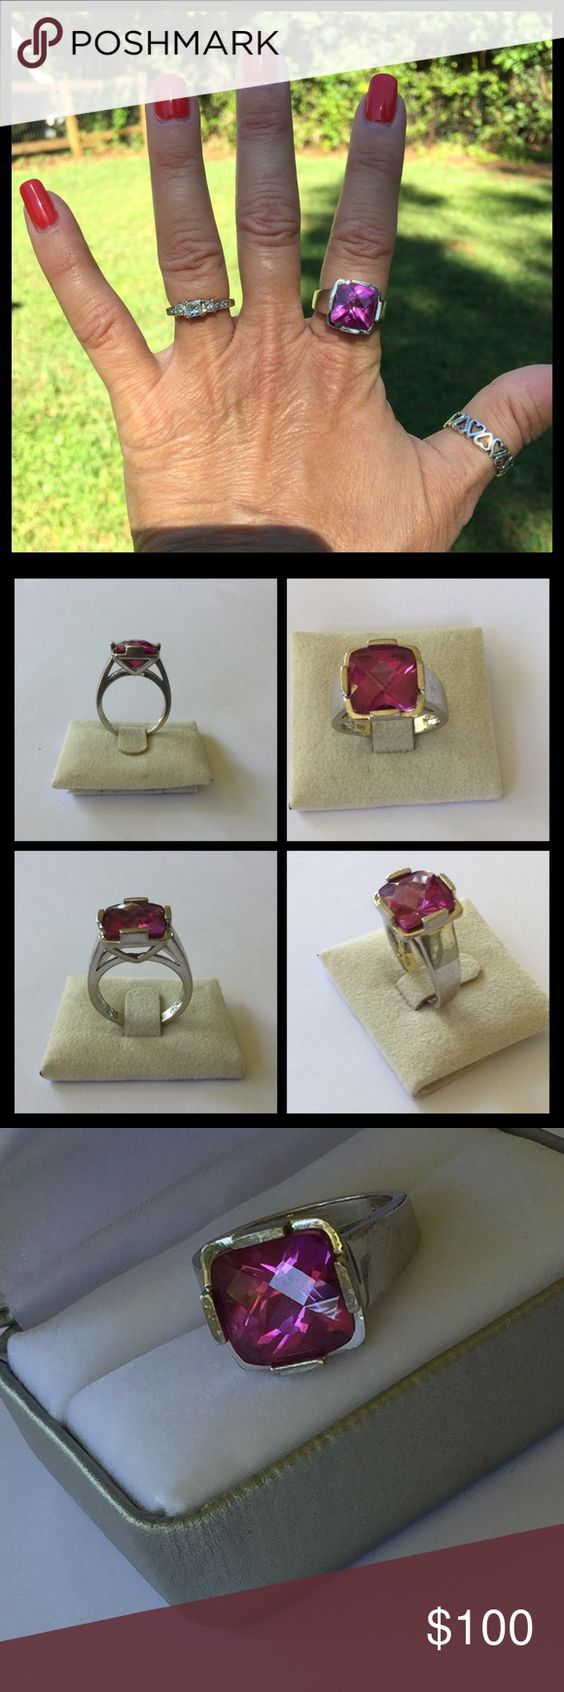 Pink Sapphire Cushion Cut Checkerboard Cut Ring 💞Sterling silver pink Sapphire designer ring. It is a nice size and stands up high. It is fully hallmarked. In good preowned condition. Size 8💞 designer Jewelry Rings